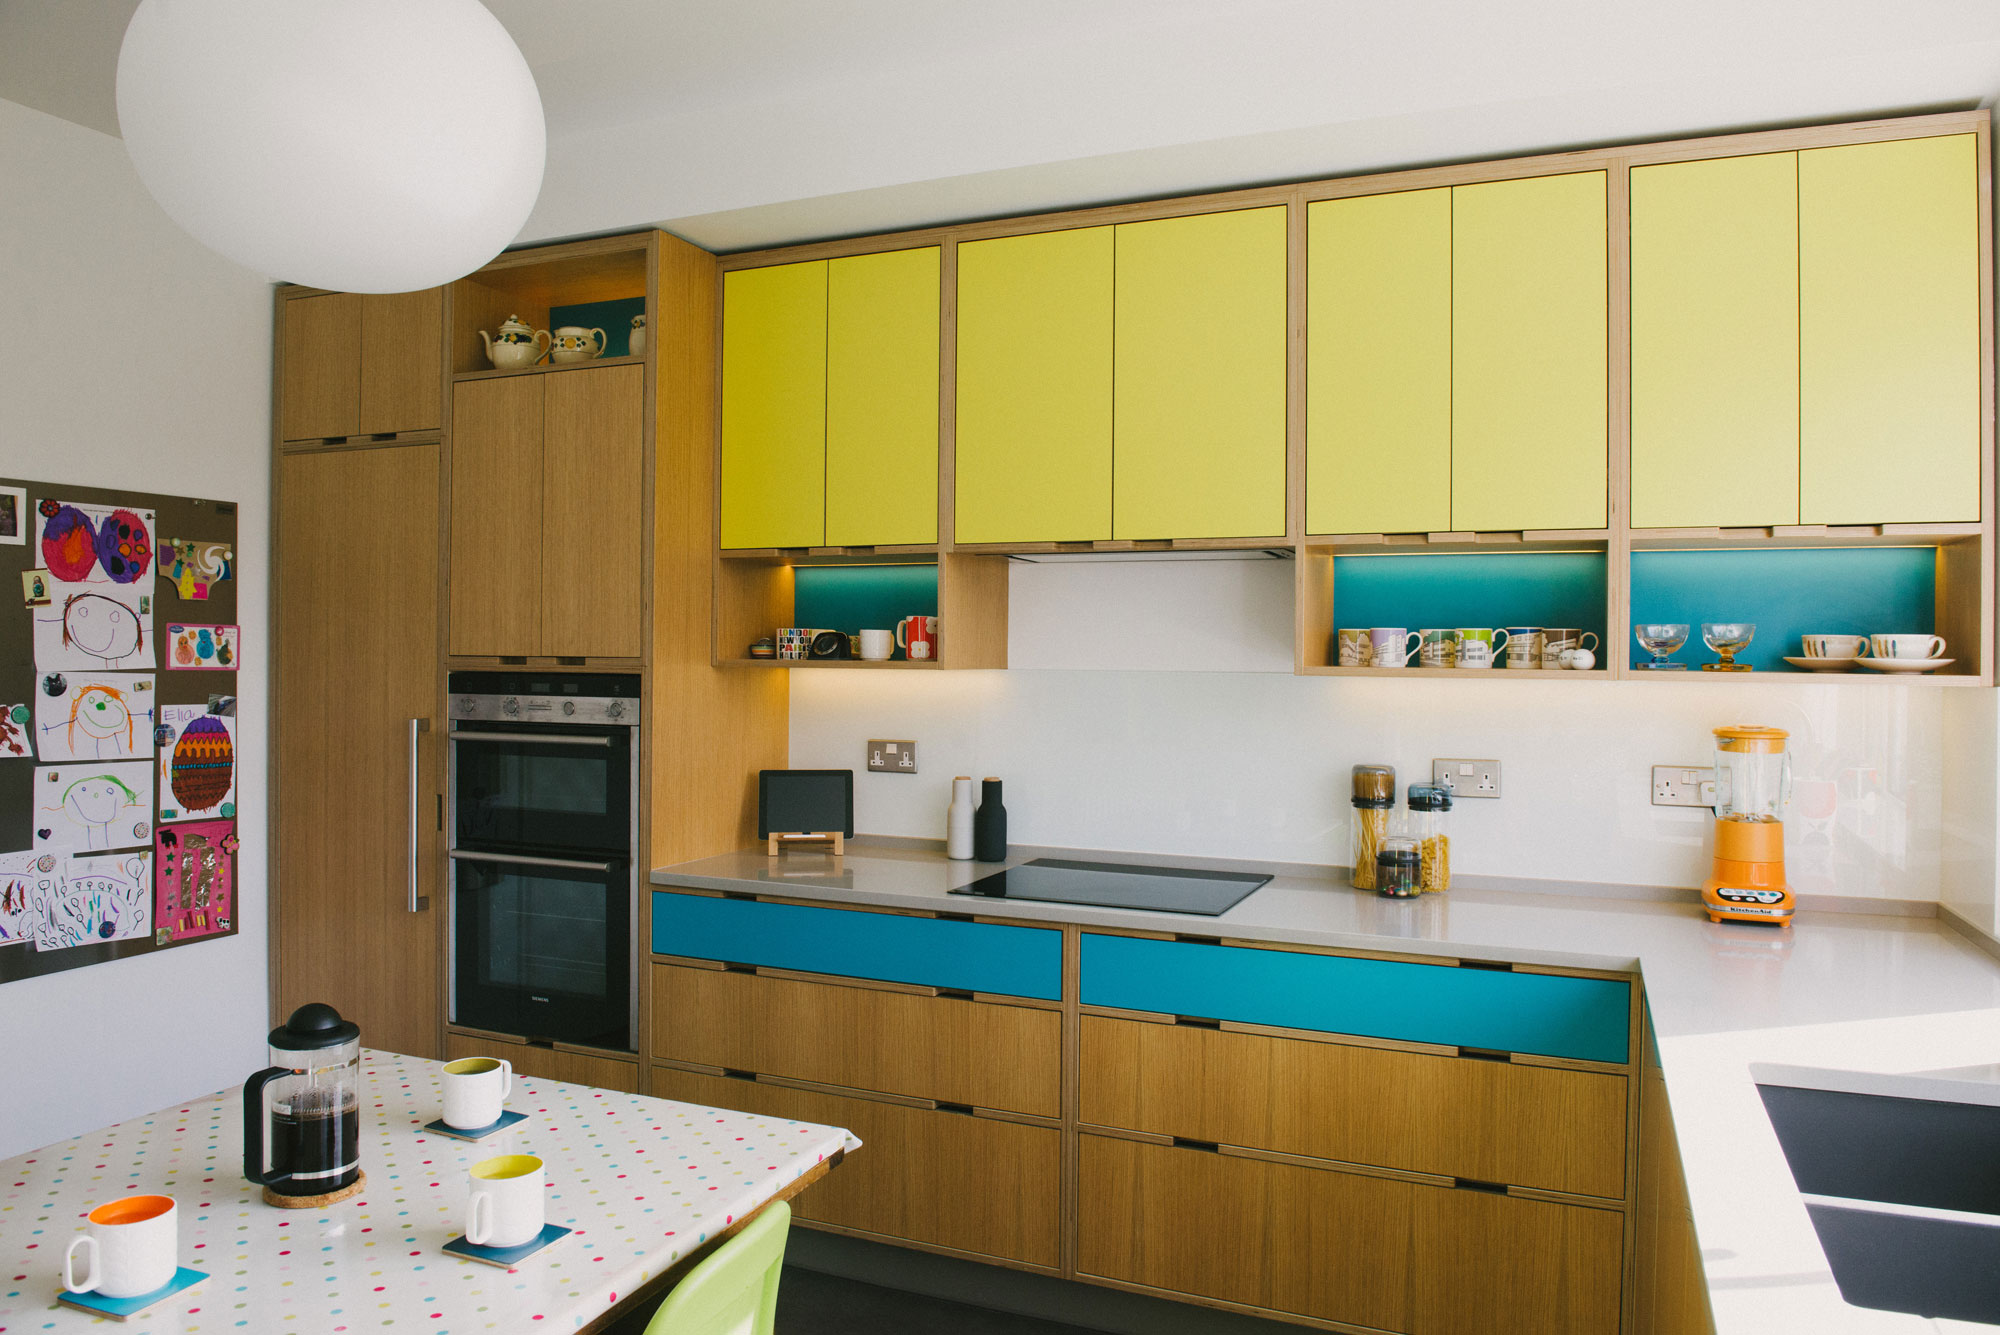 yellow and blue plywood kitchen